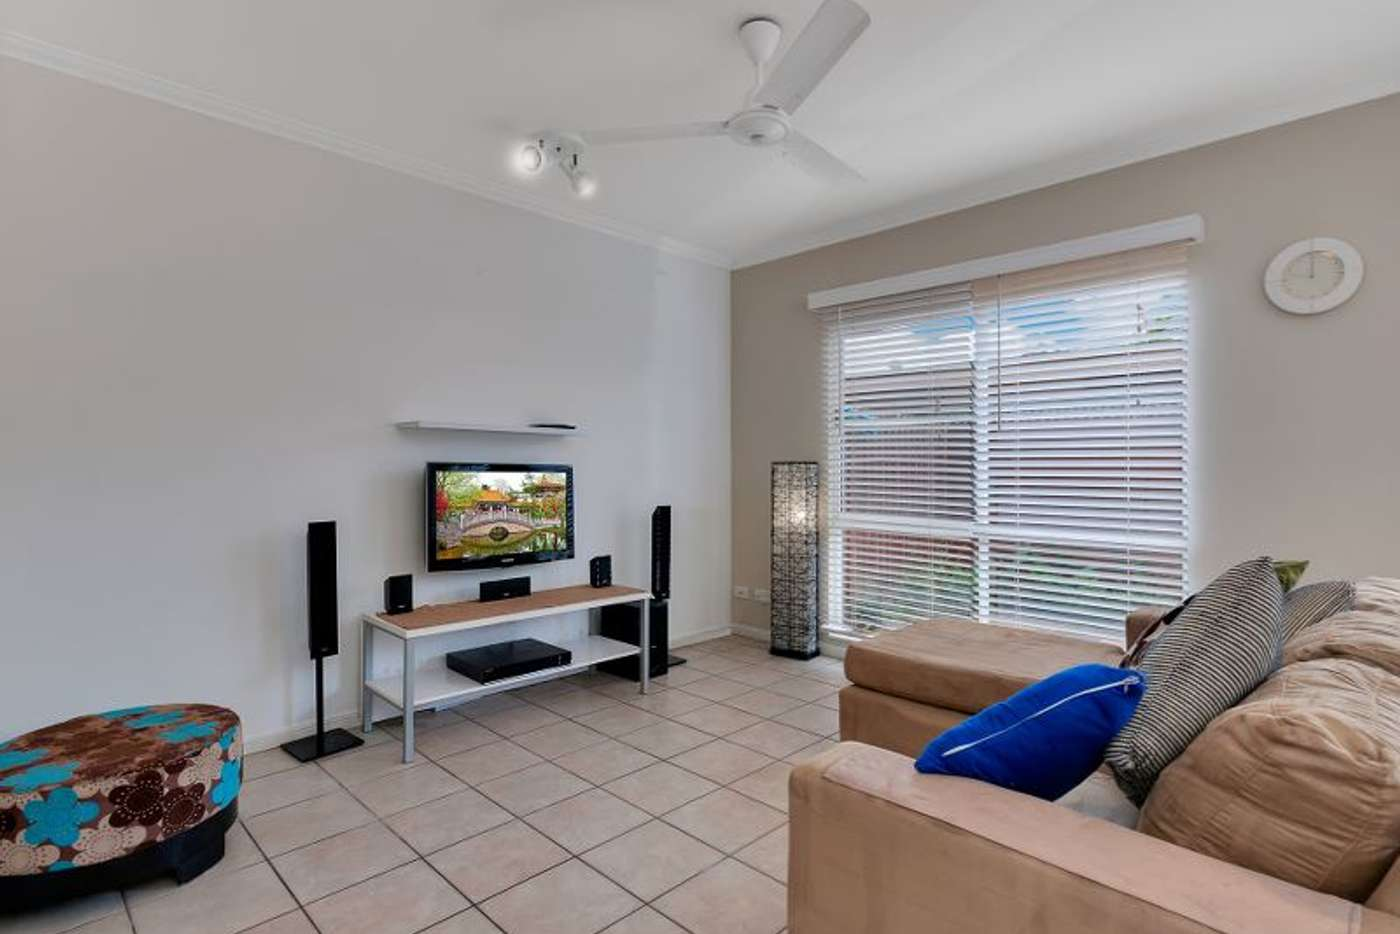 Sixth view of Homely unit listing, 3/426 McCoombe Street, Mooroobool QLD 4870